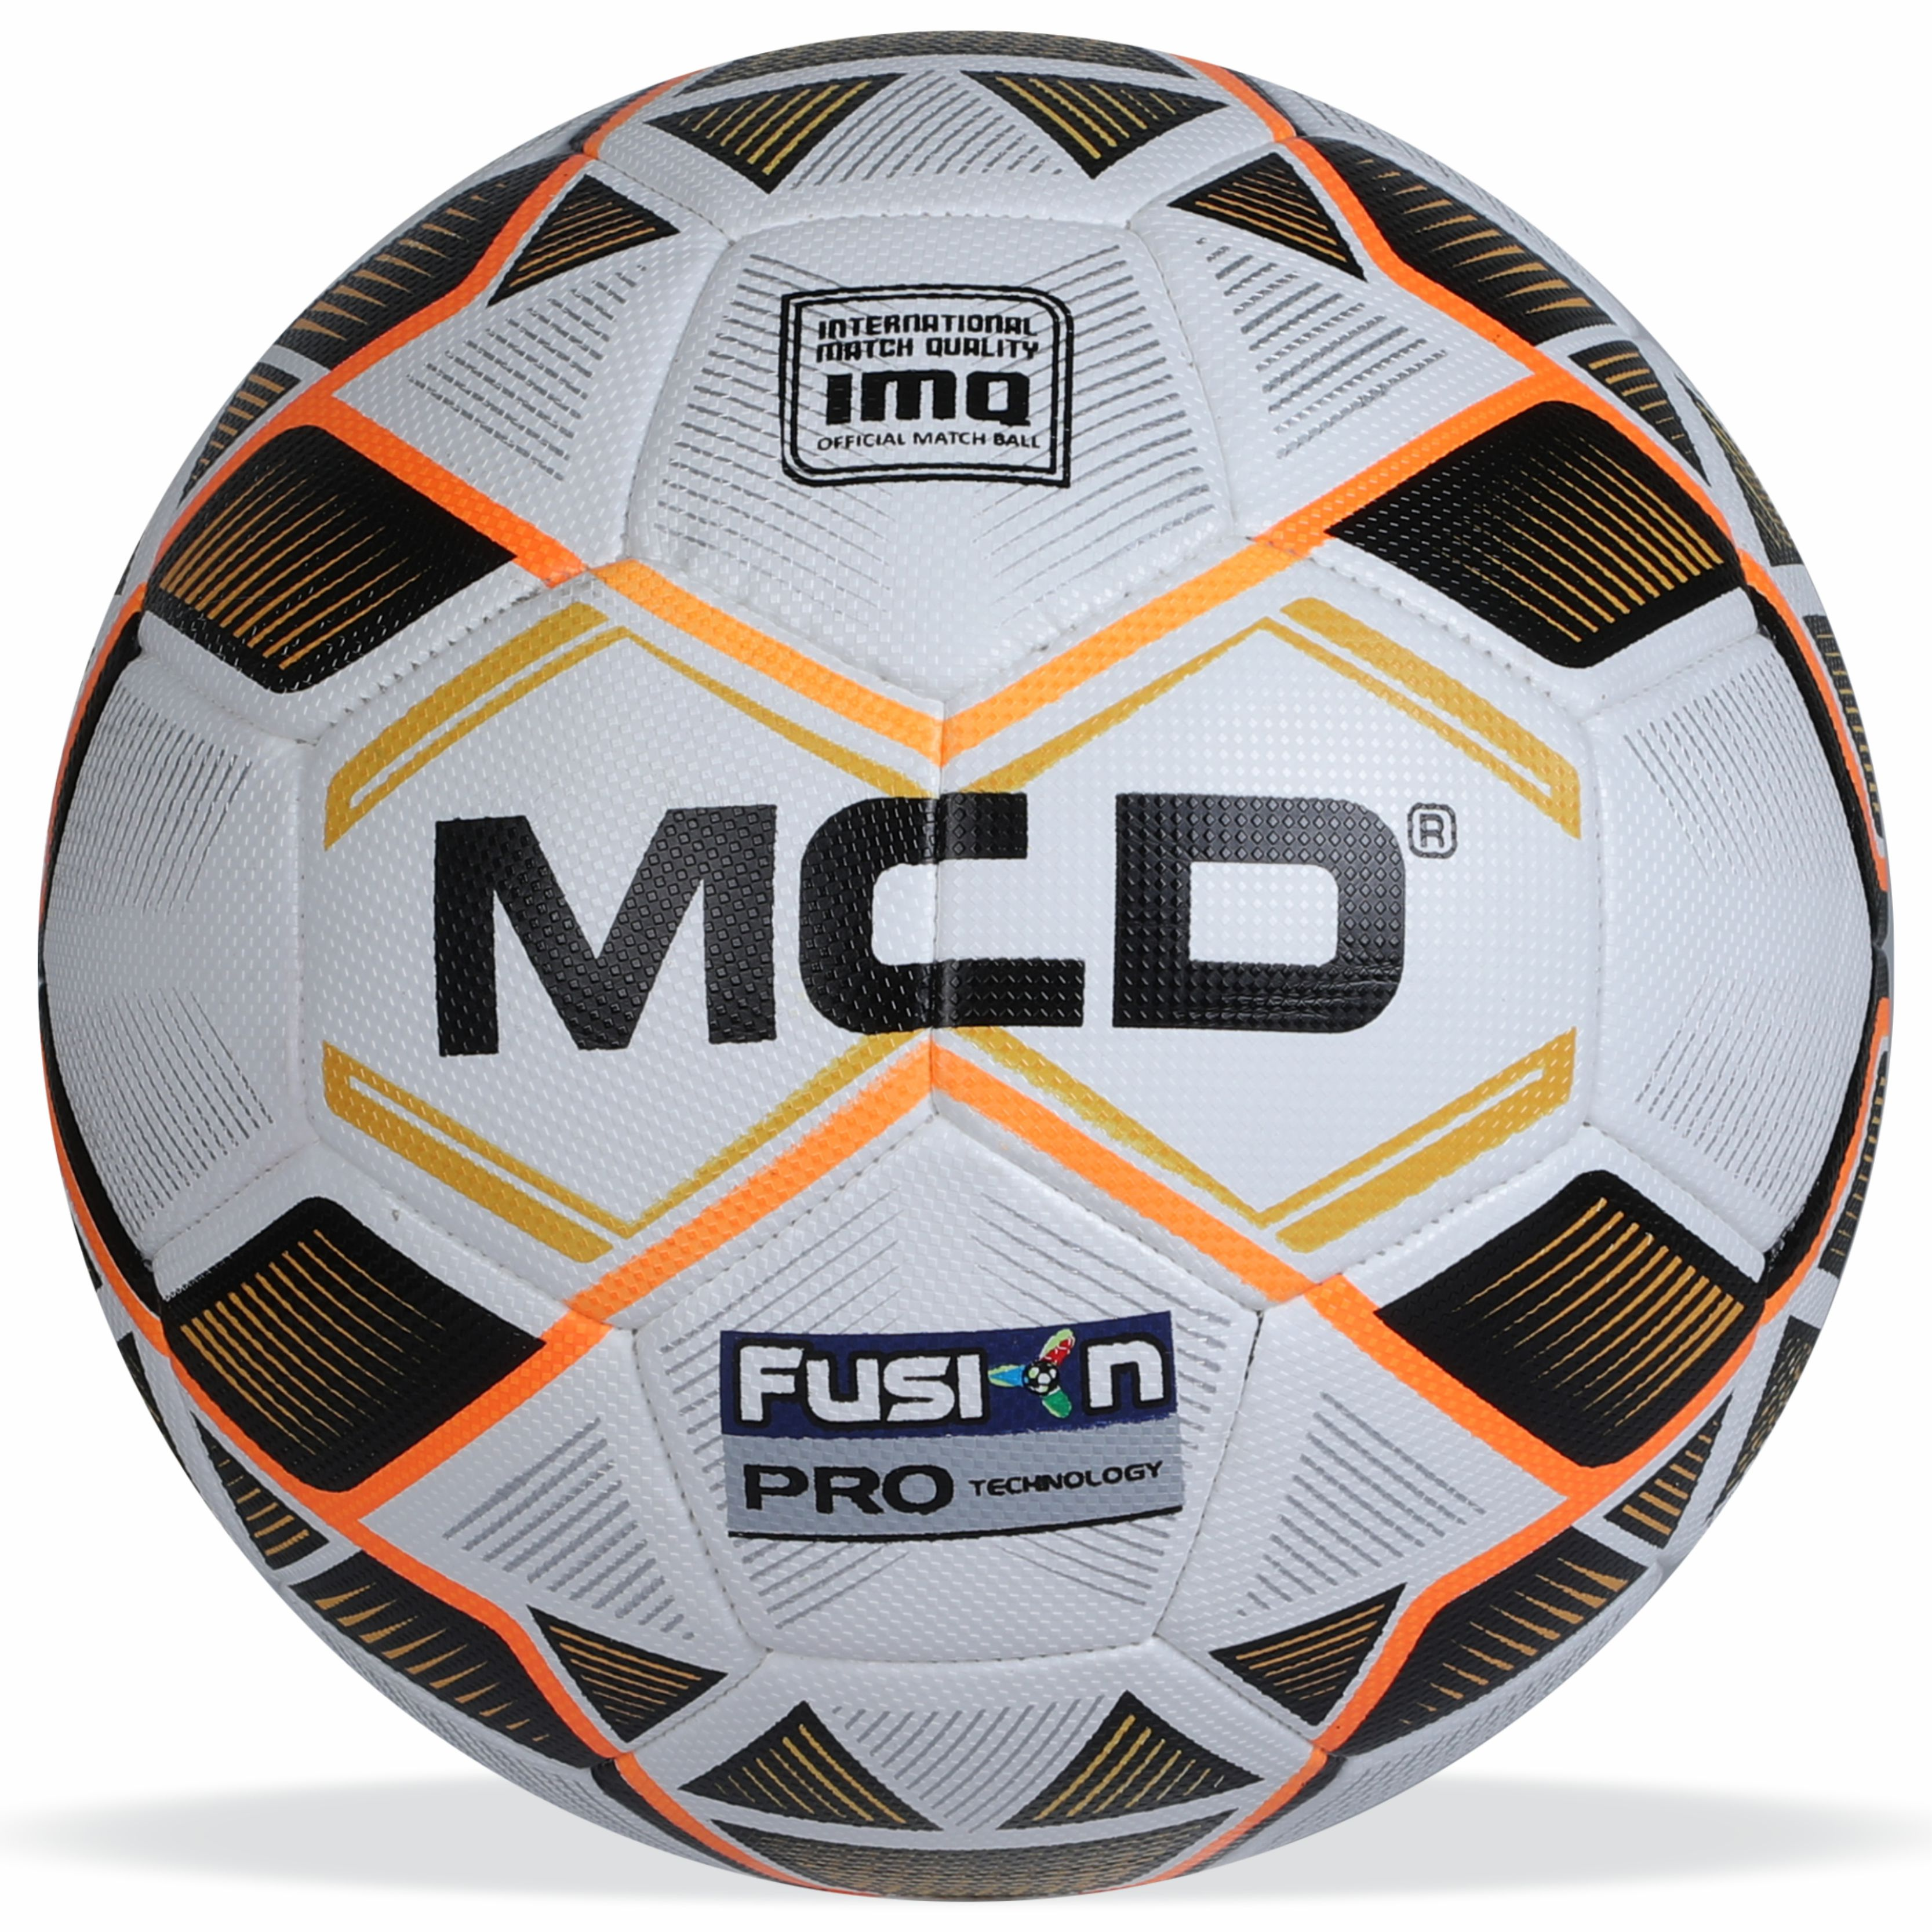 Size 3 football Under 7, 8 and 9 Age Groups, Football For Sports Kids And Boys Multicolor